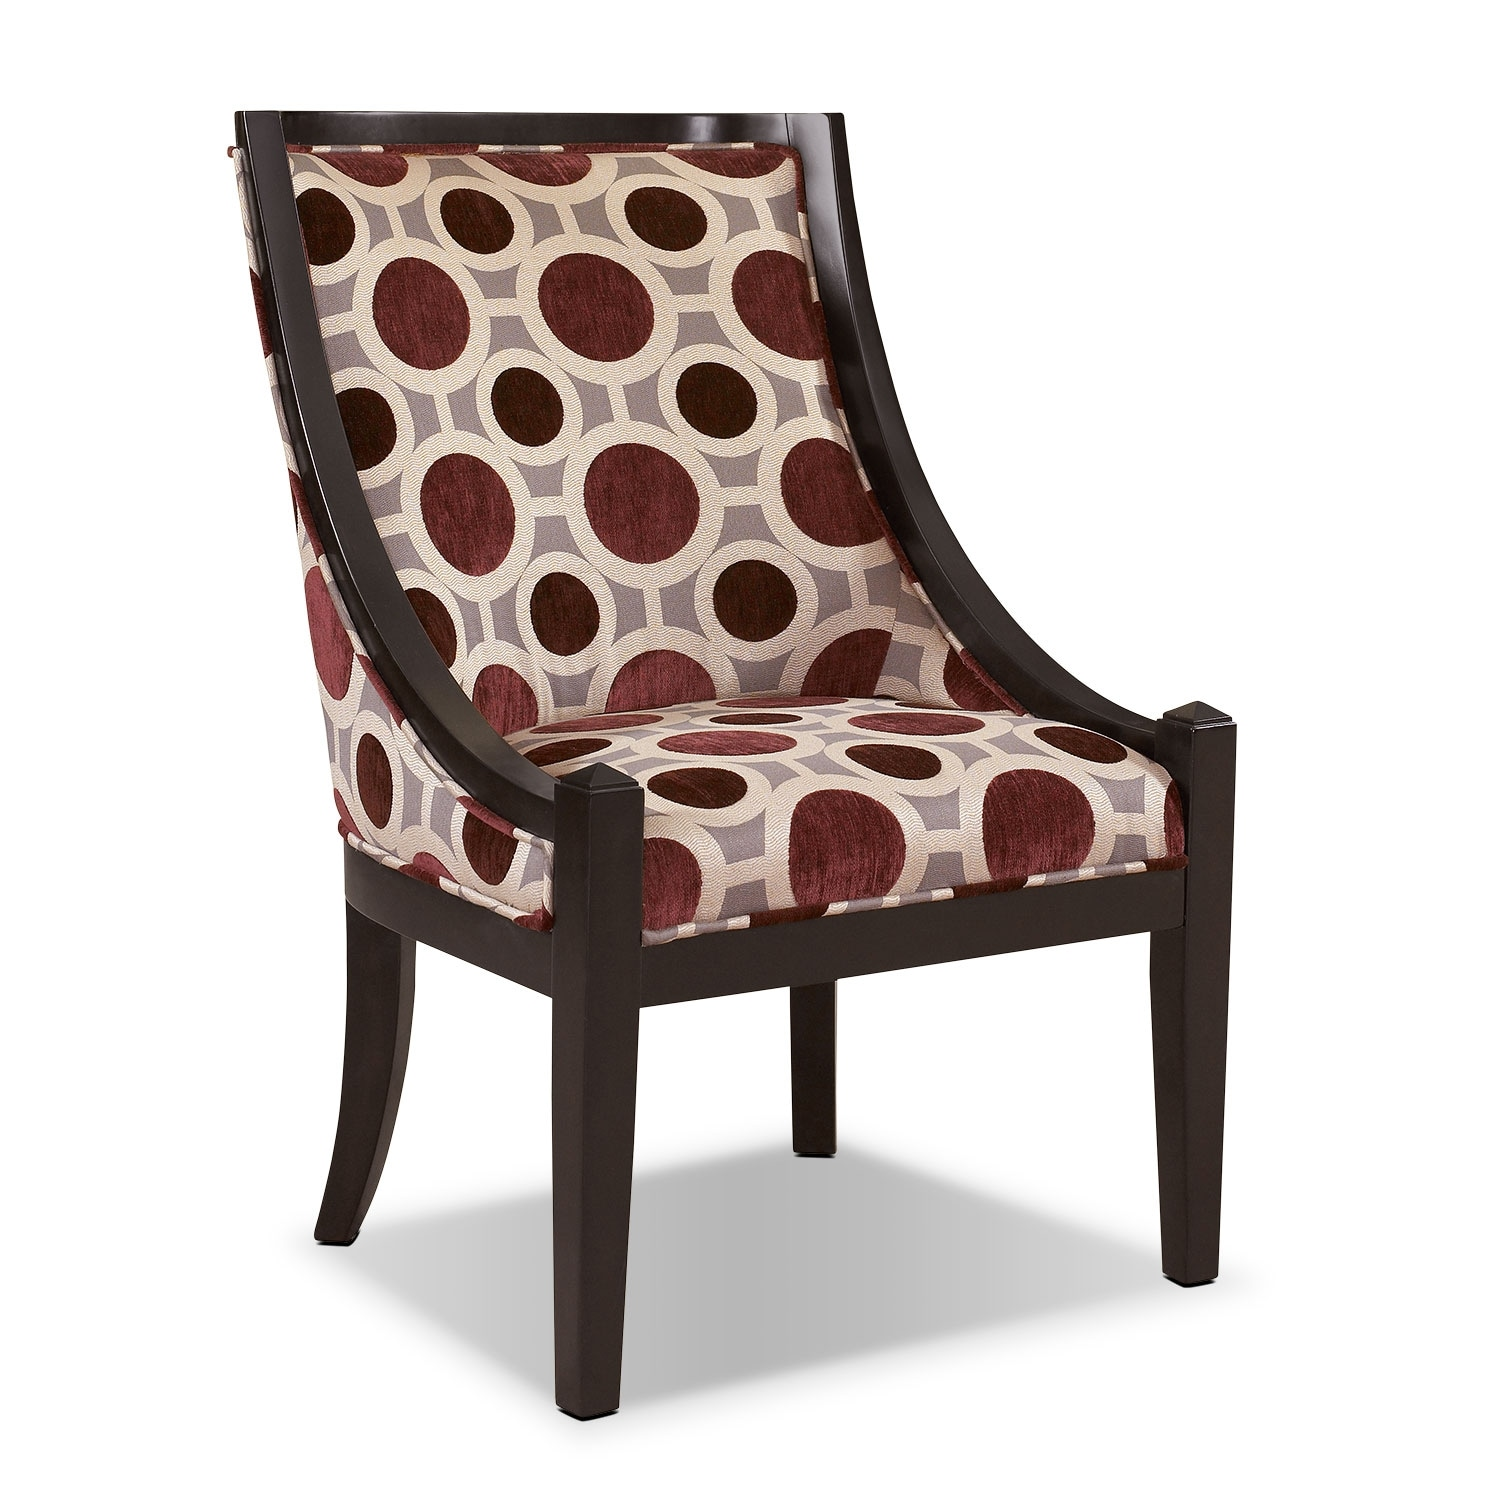 Callie Accent Chair - Mulberry